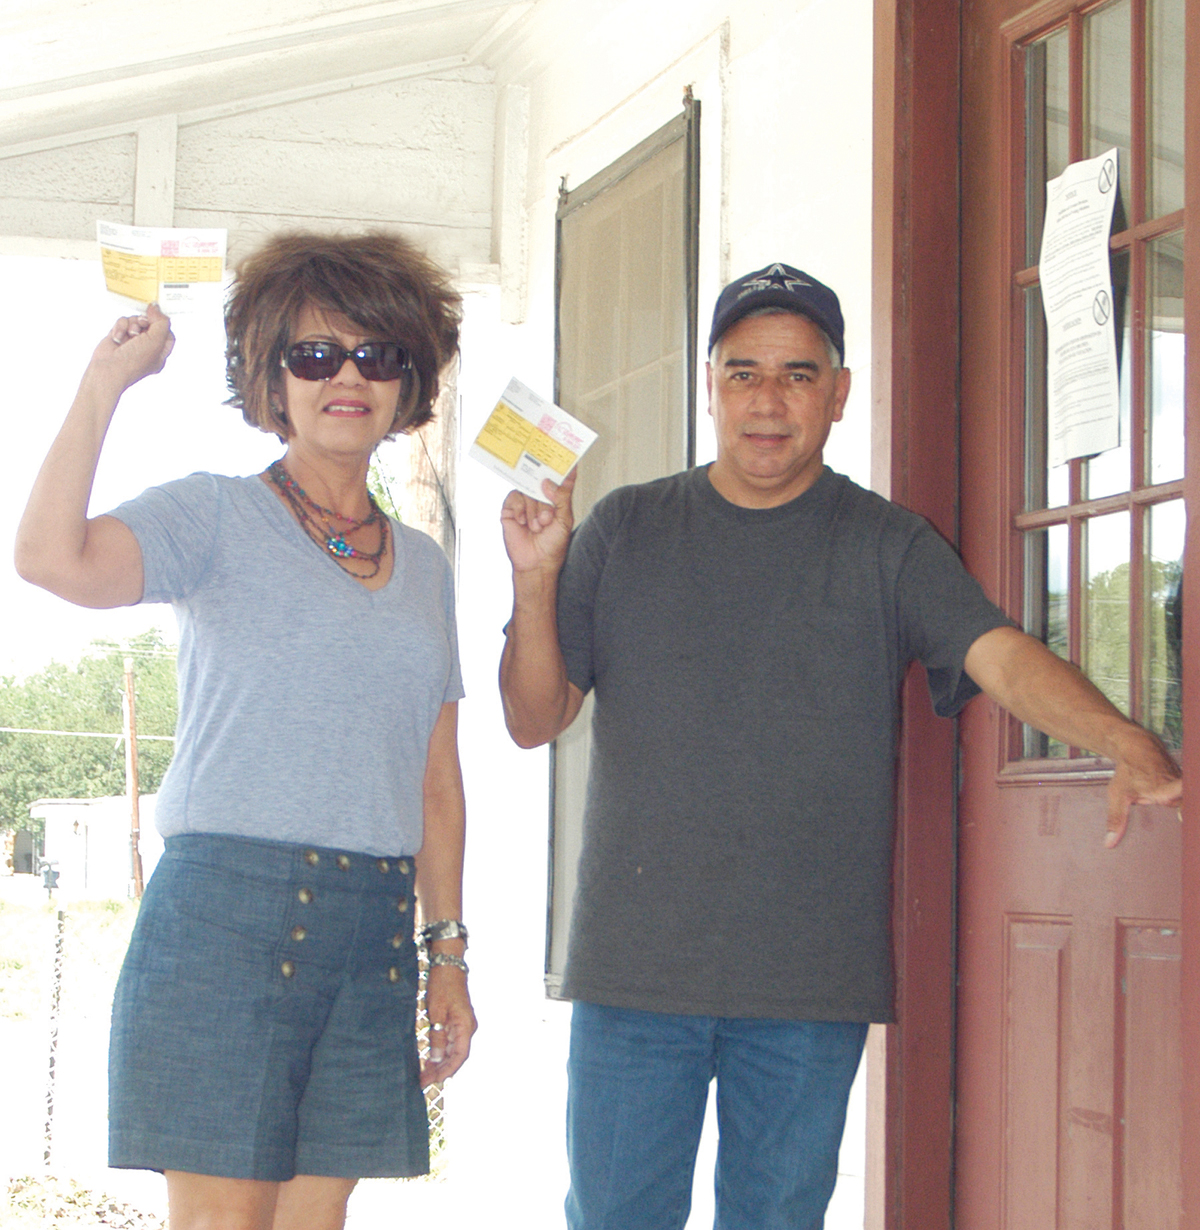 Jane Griego and Sammy Mejia proudly show their voter cards as they go to vote.